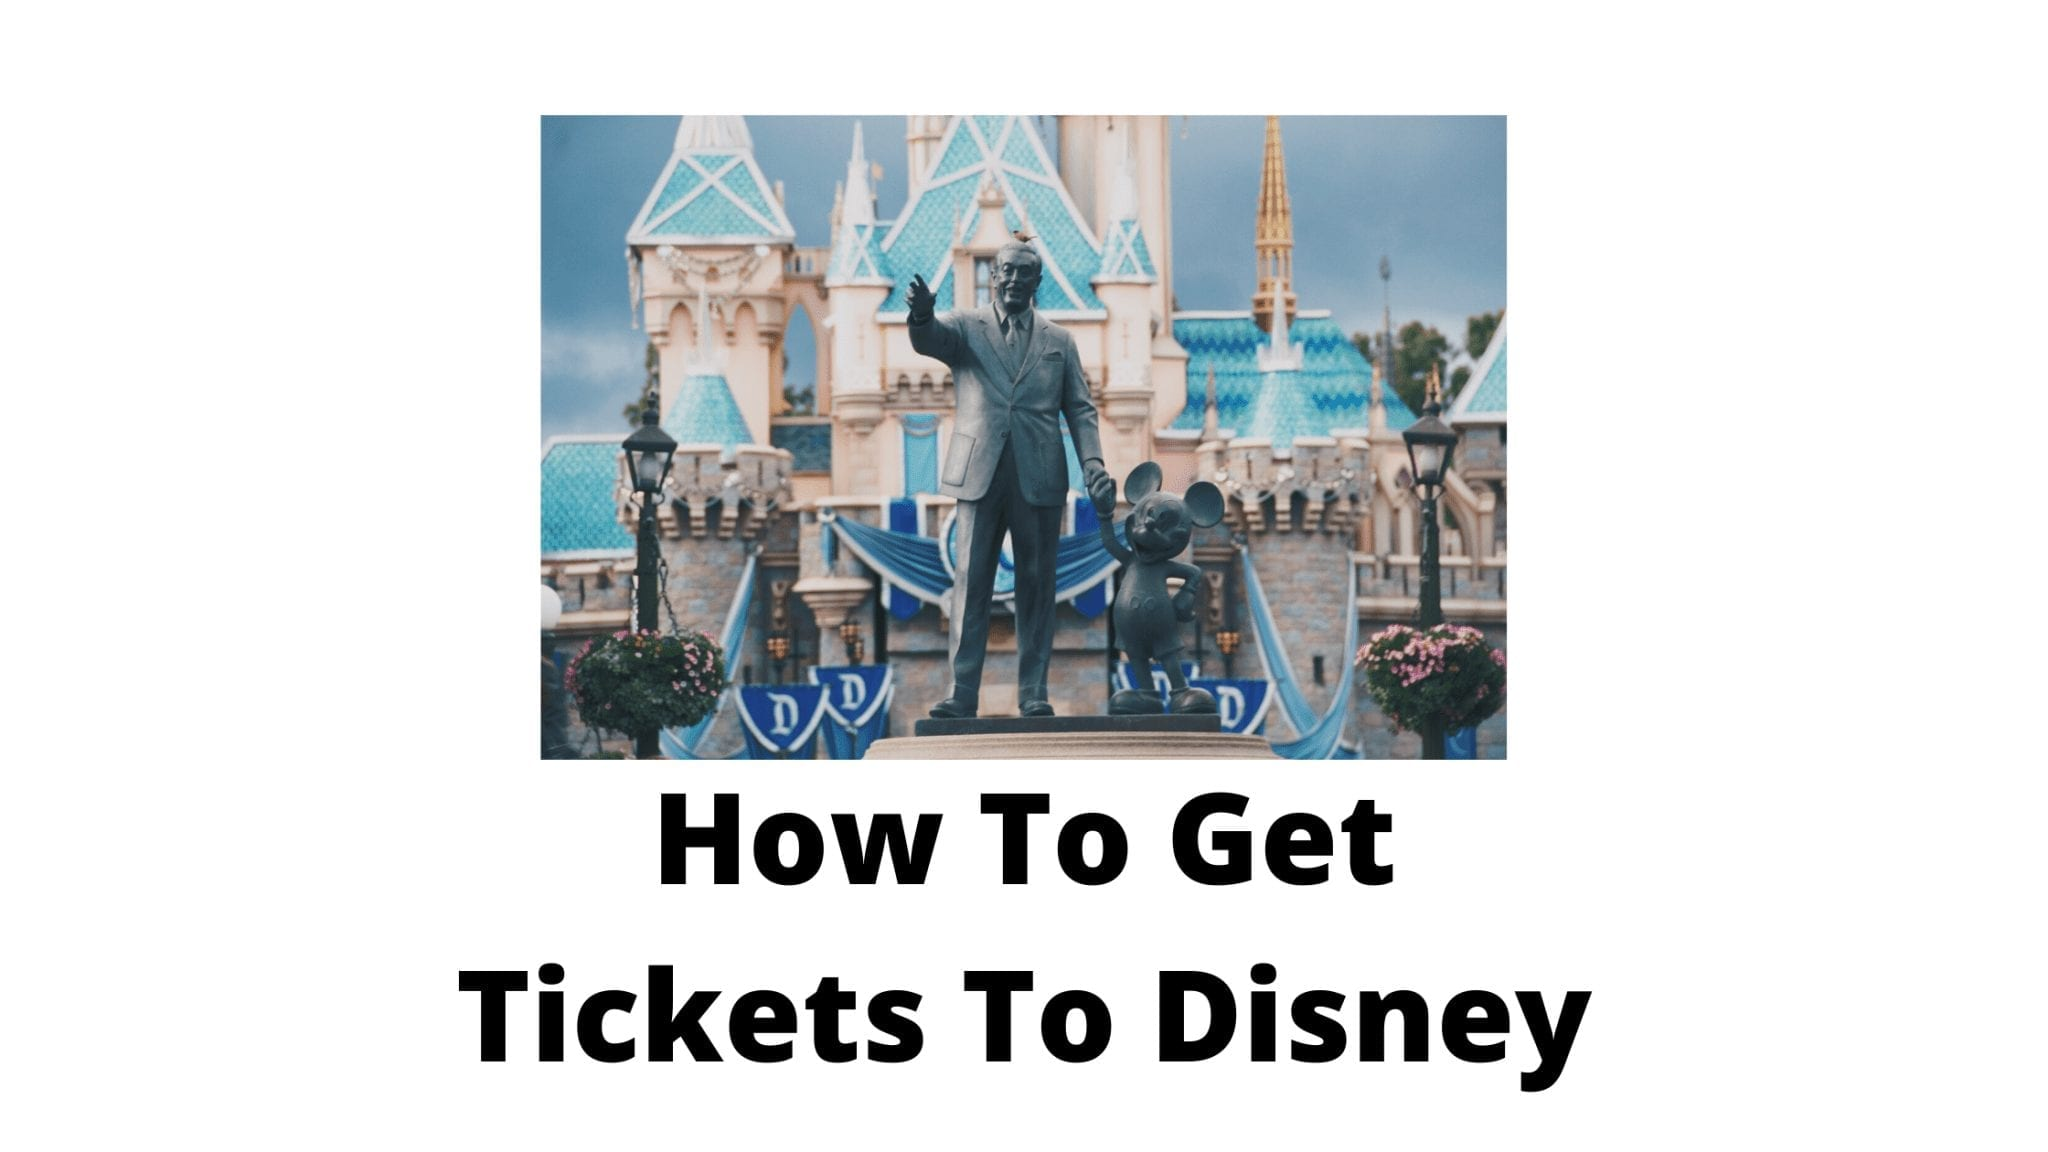 How To Get Tickets To Disney